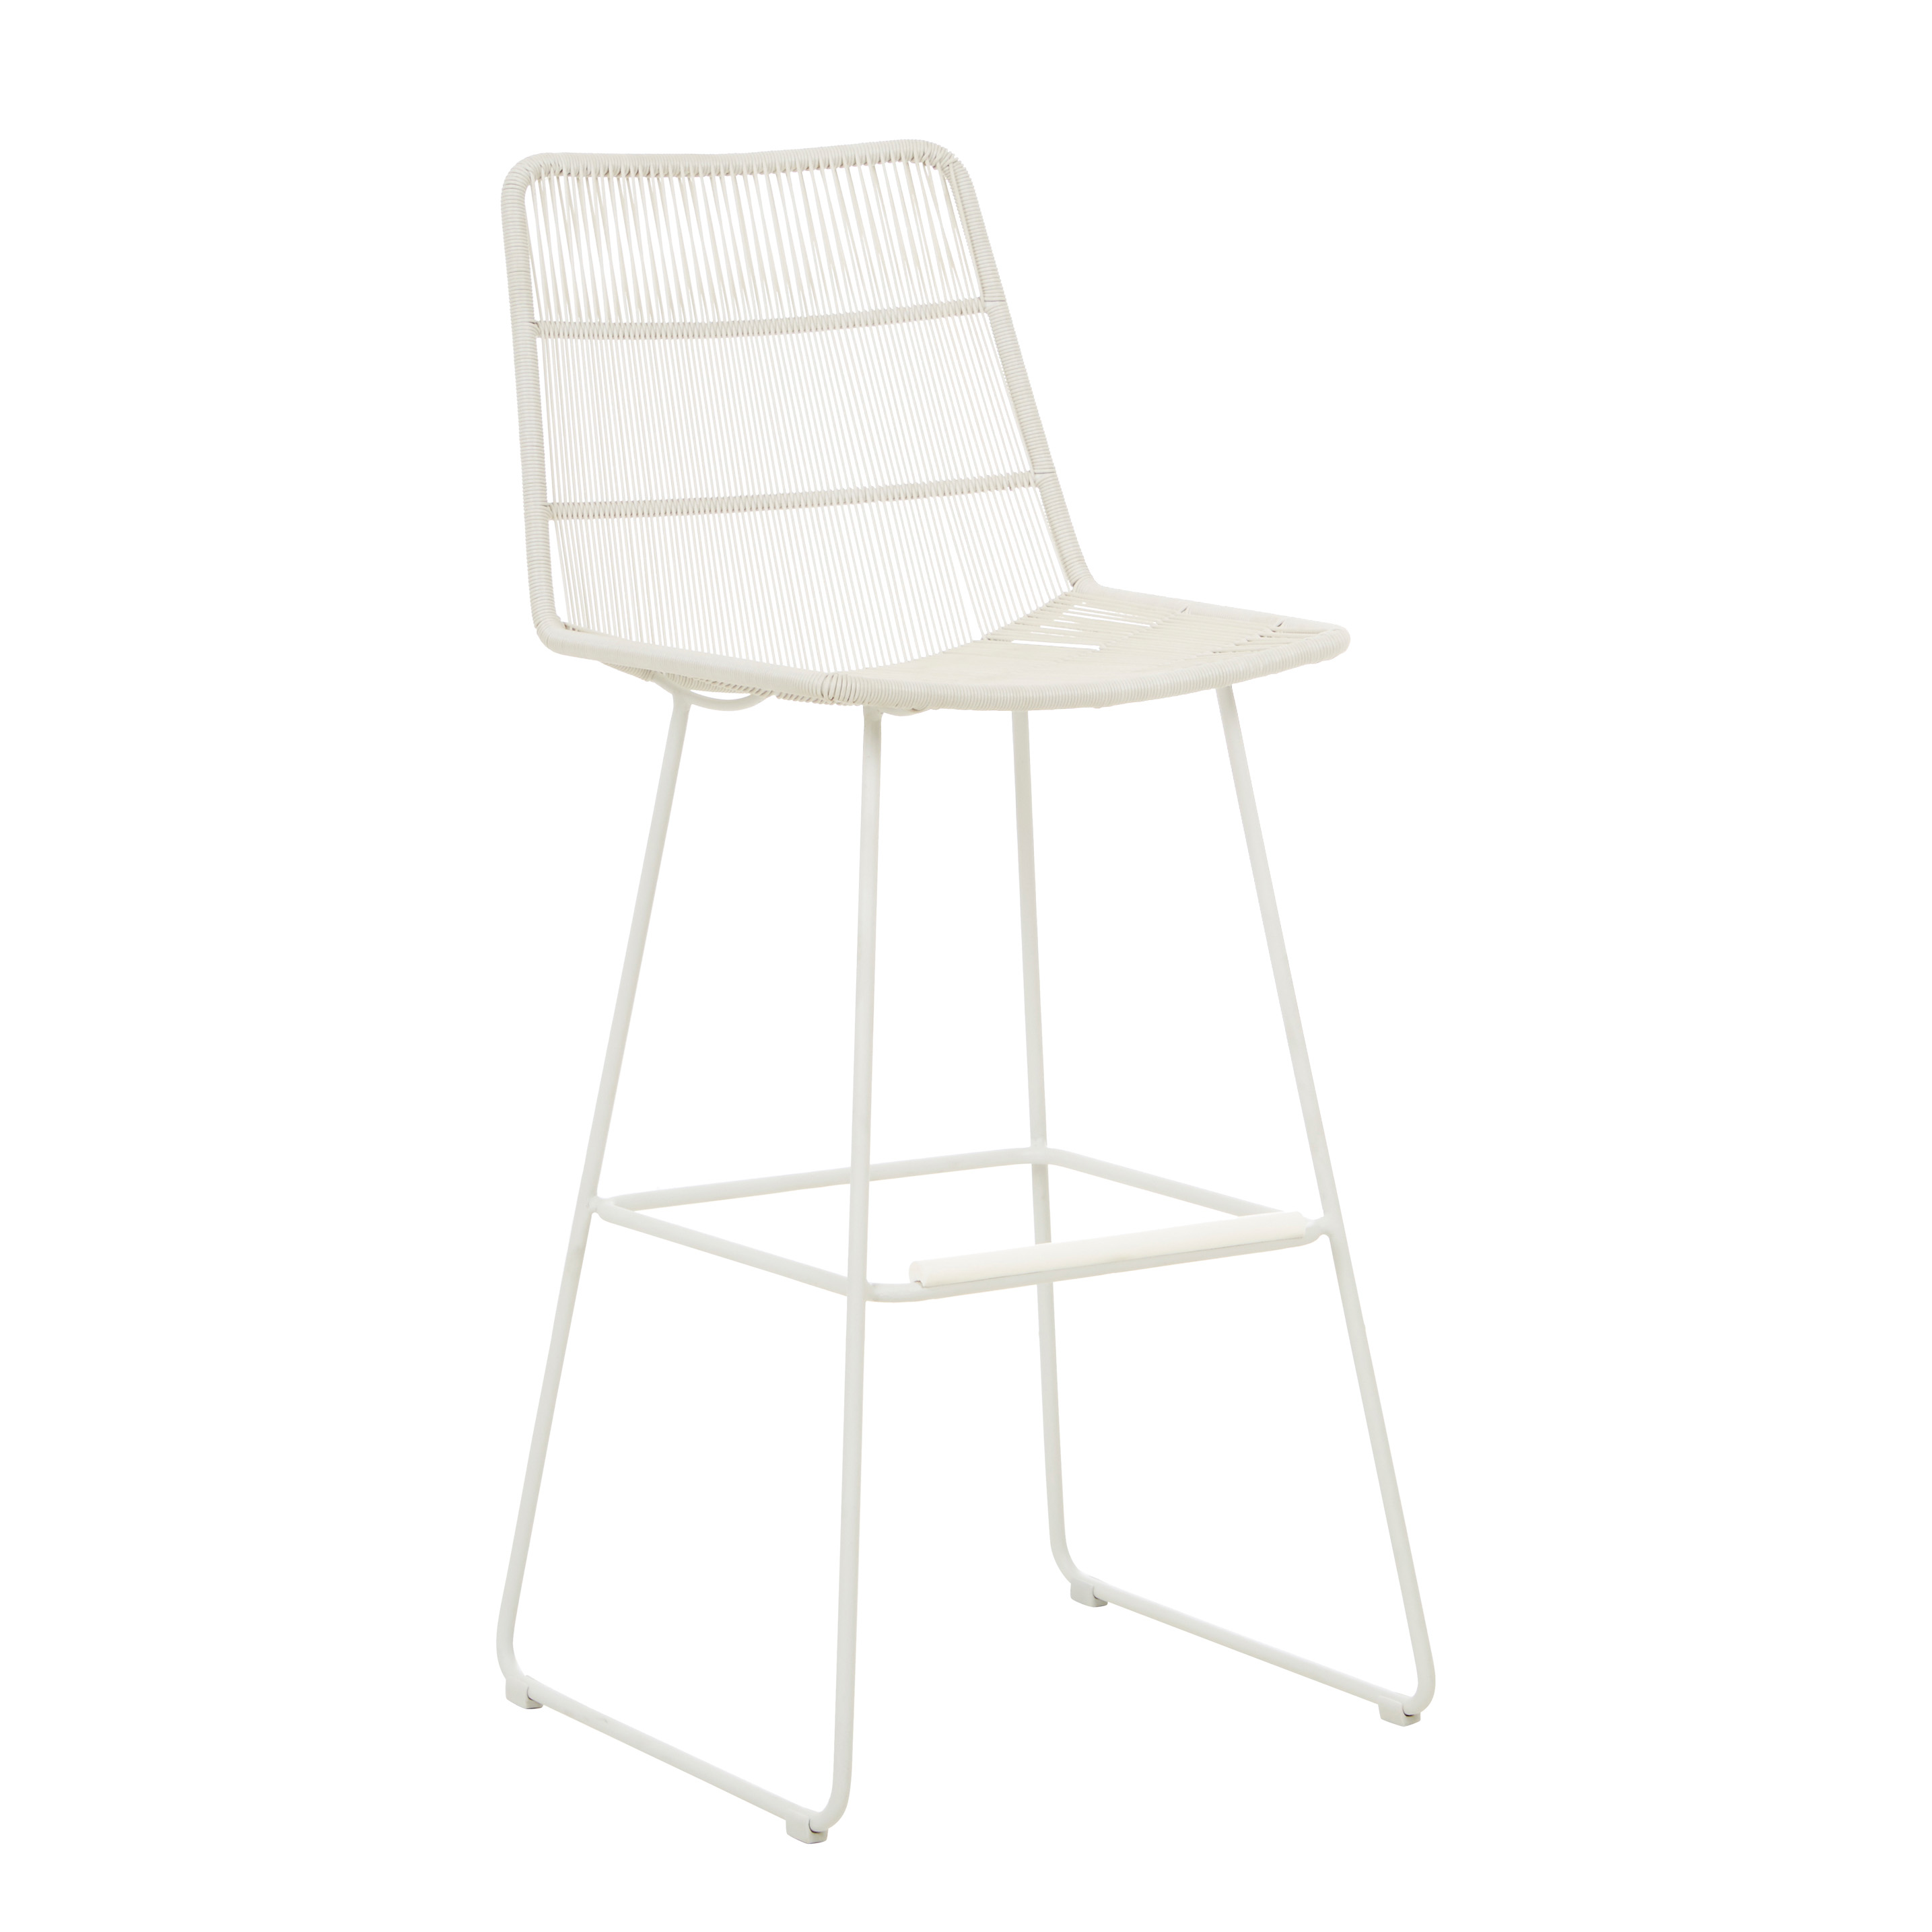 Furniture Hero-Images Dining-Chairs-Benches-and-Stools granada-sleigh-barstool-03